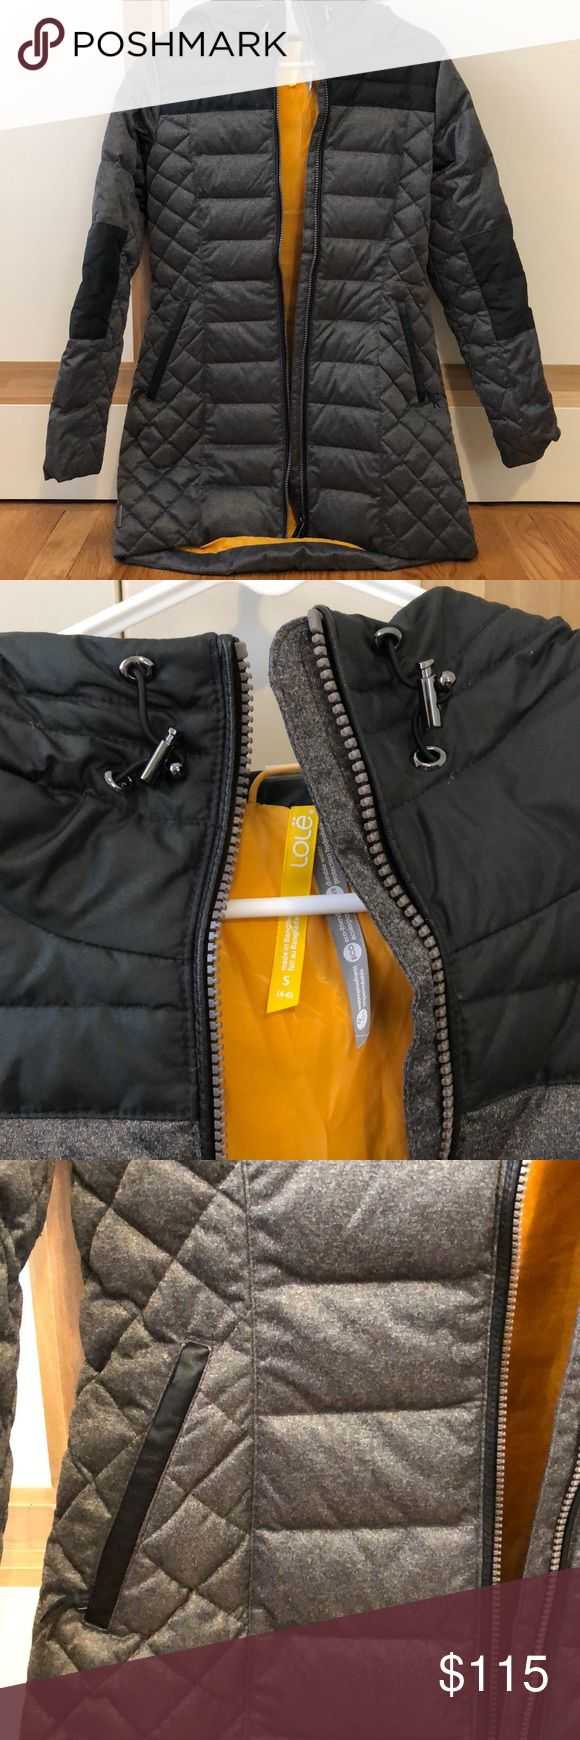 Women's Lole Jacket Black and grey with yellow interior women's Lole Jacket. Water resistant. Very warm!! Longer in back, fitted for women. Zipper enclosure with hood. Lole Jackets & Coats Puffers